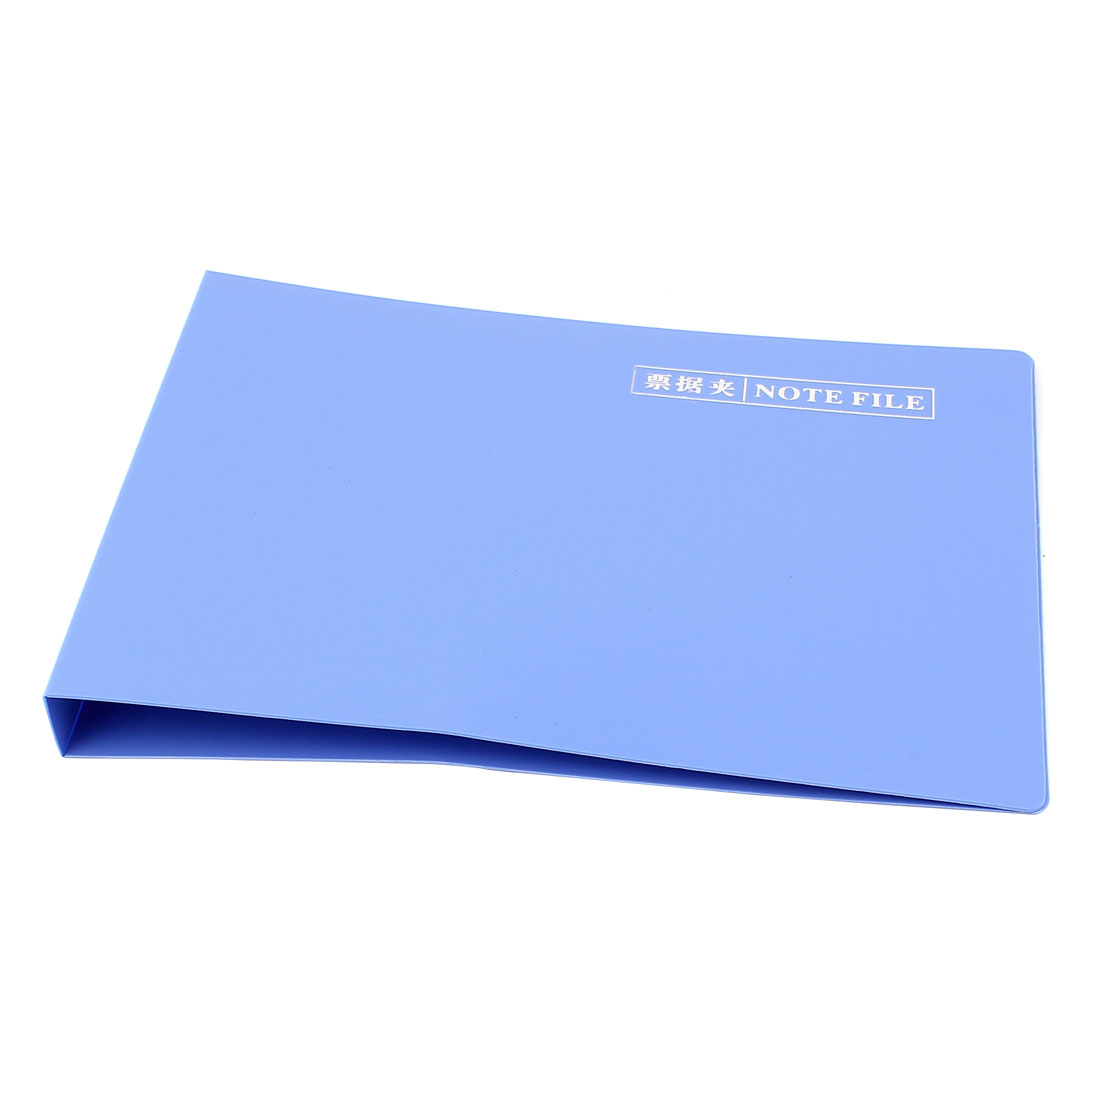 School Office Metal Lever Clip A5 Papers Contracts Documents Receipt Organizer Files Folder Blue